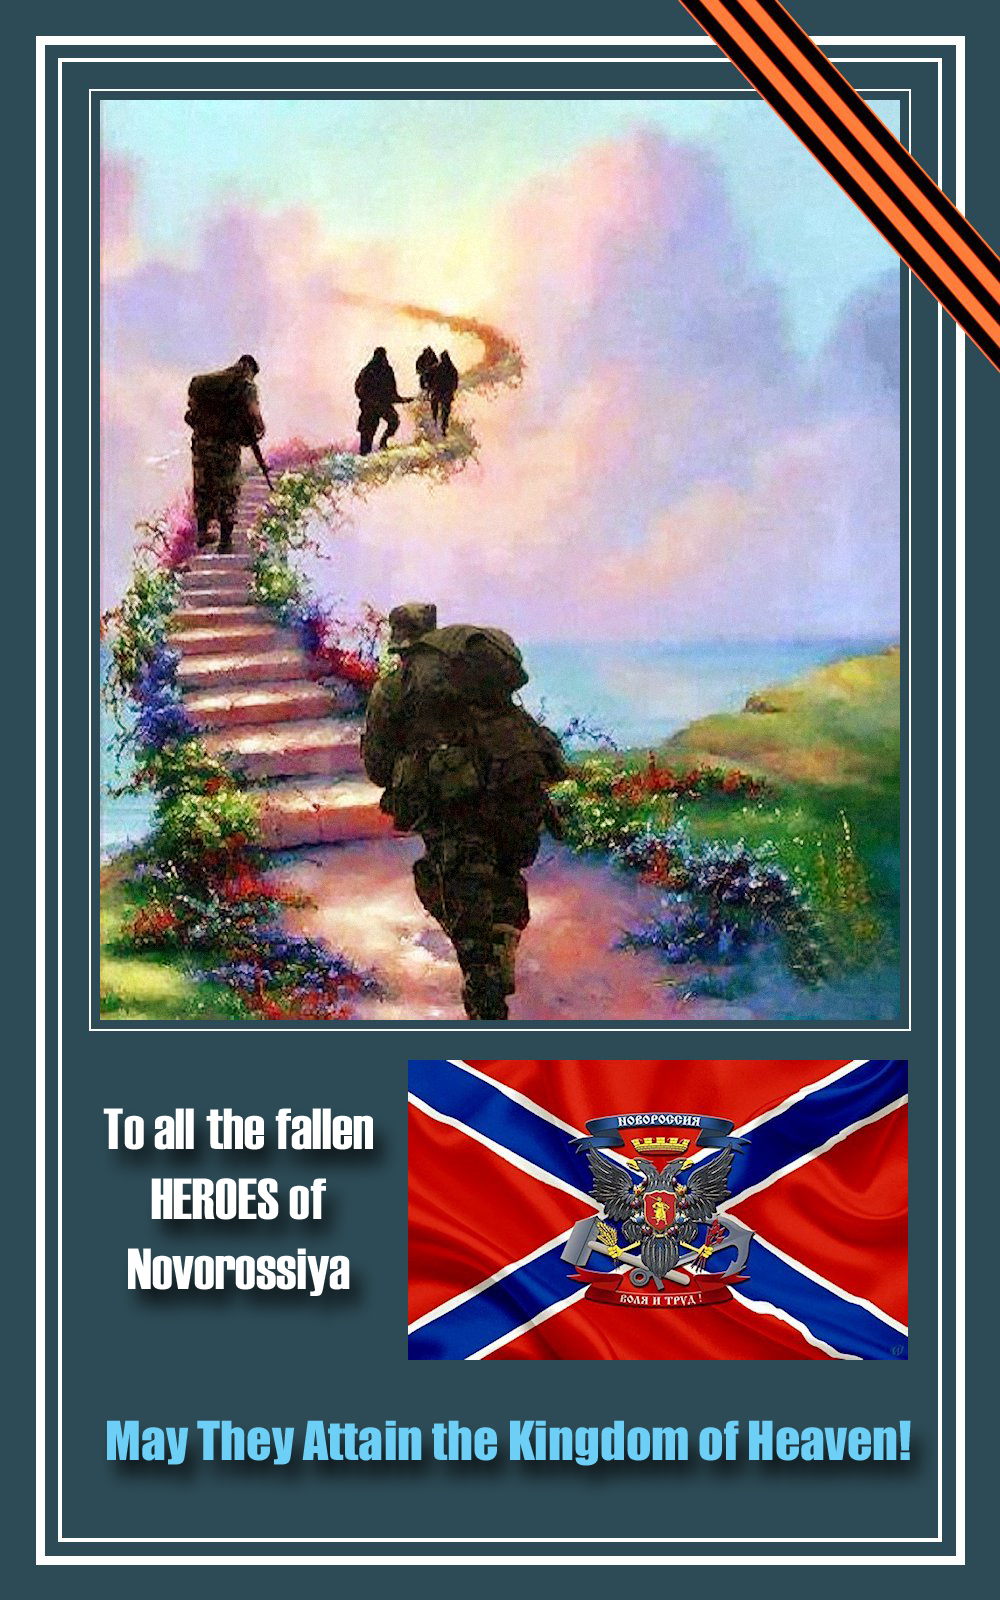 00 to the fallen heroes of novorossiya. 290615